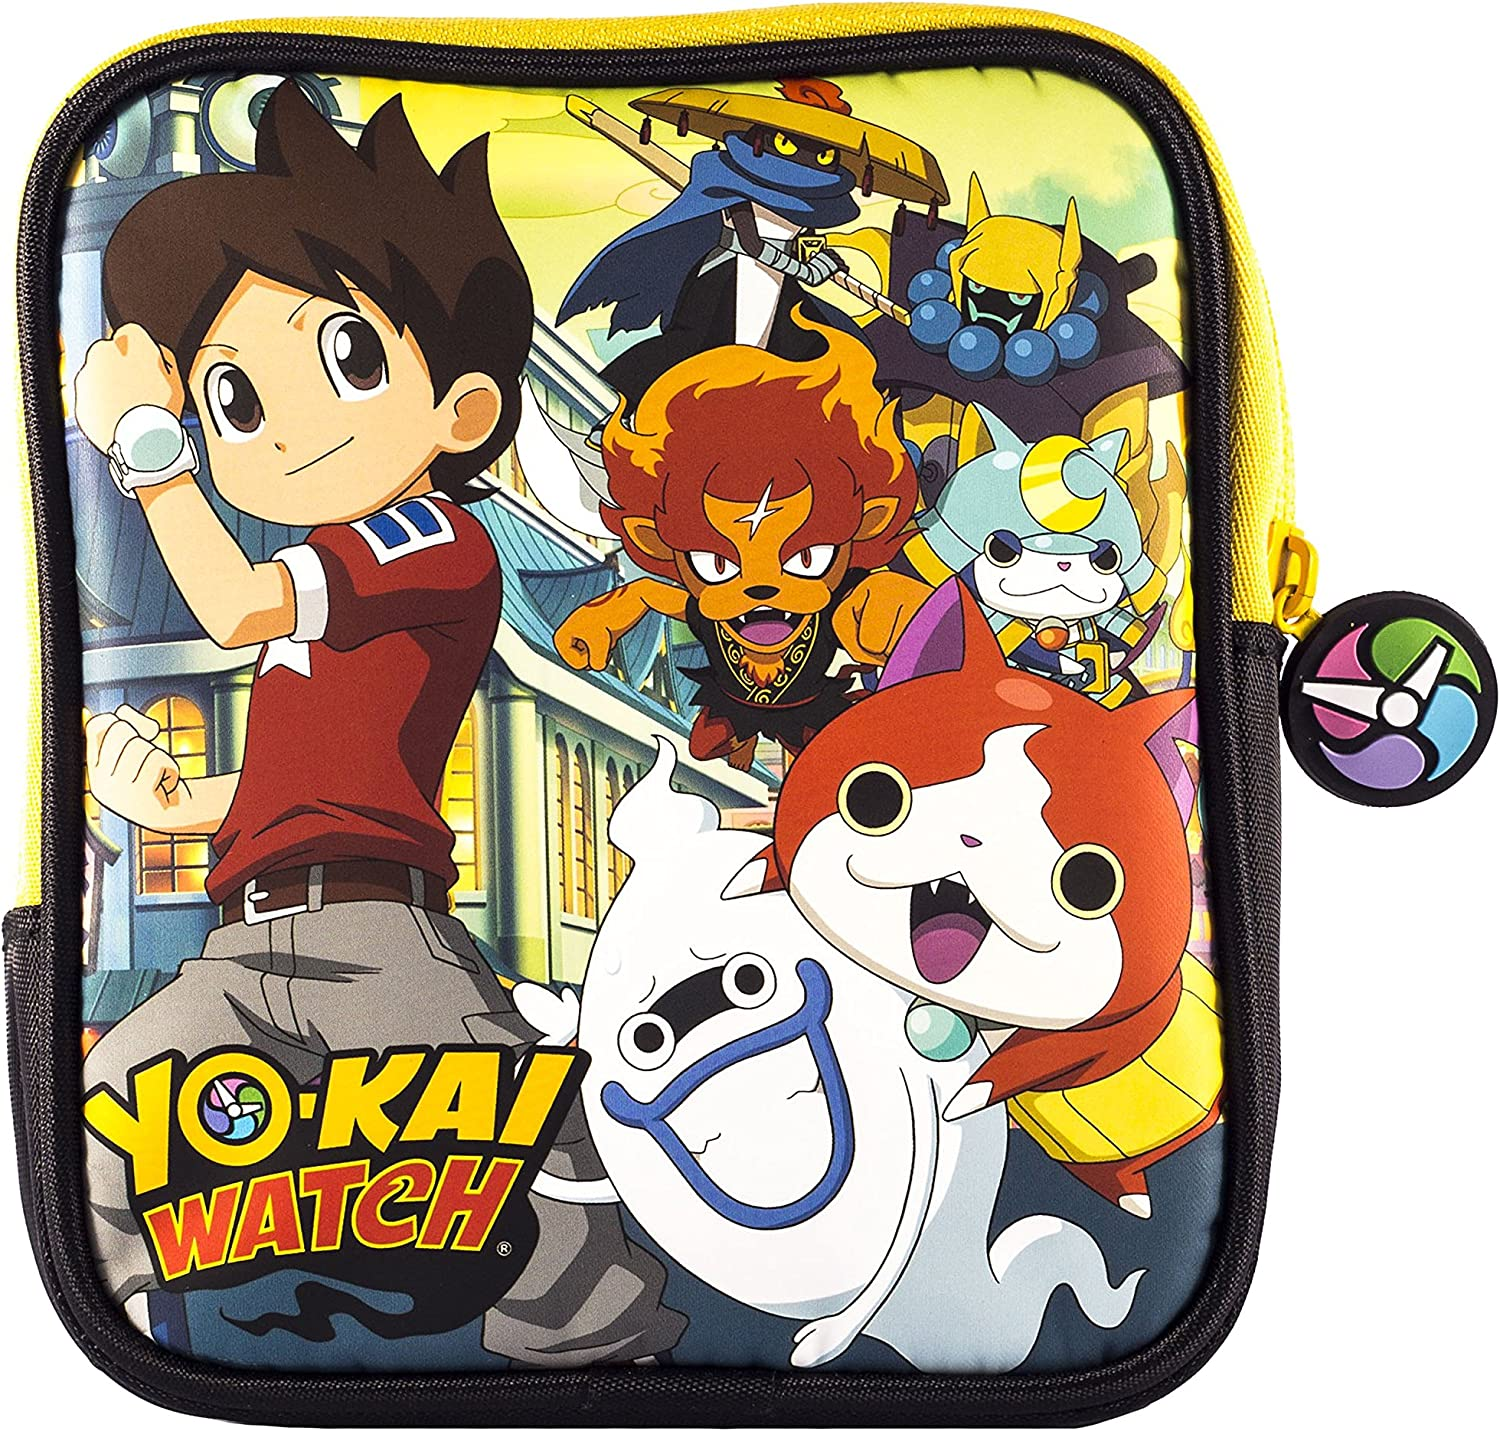 Indeca- Bolsa funda de transporte para Nintendo 2DS de Yokai Watch: Amazon.es: Videojuegos